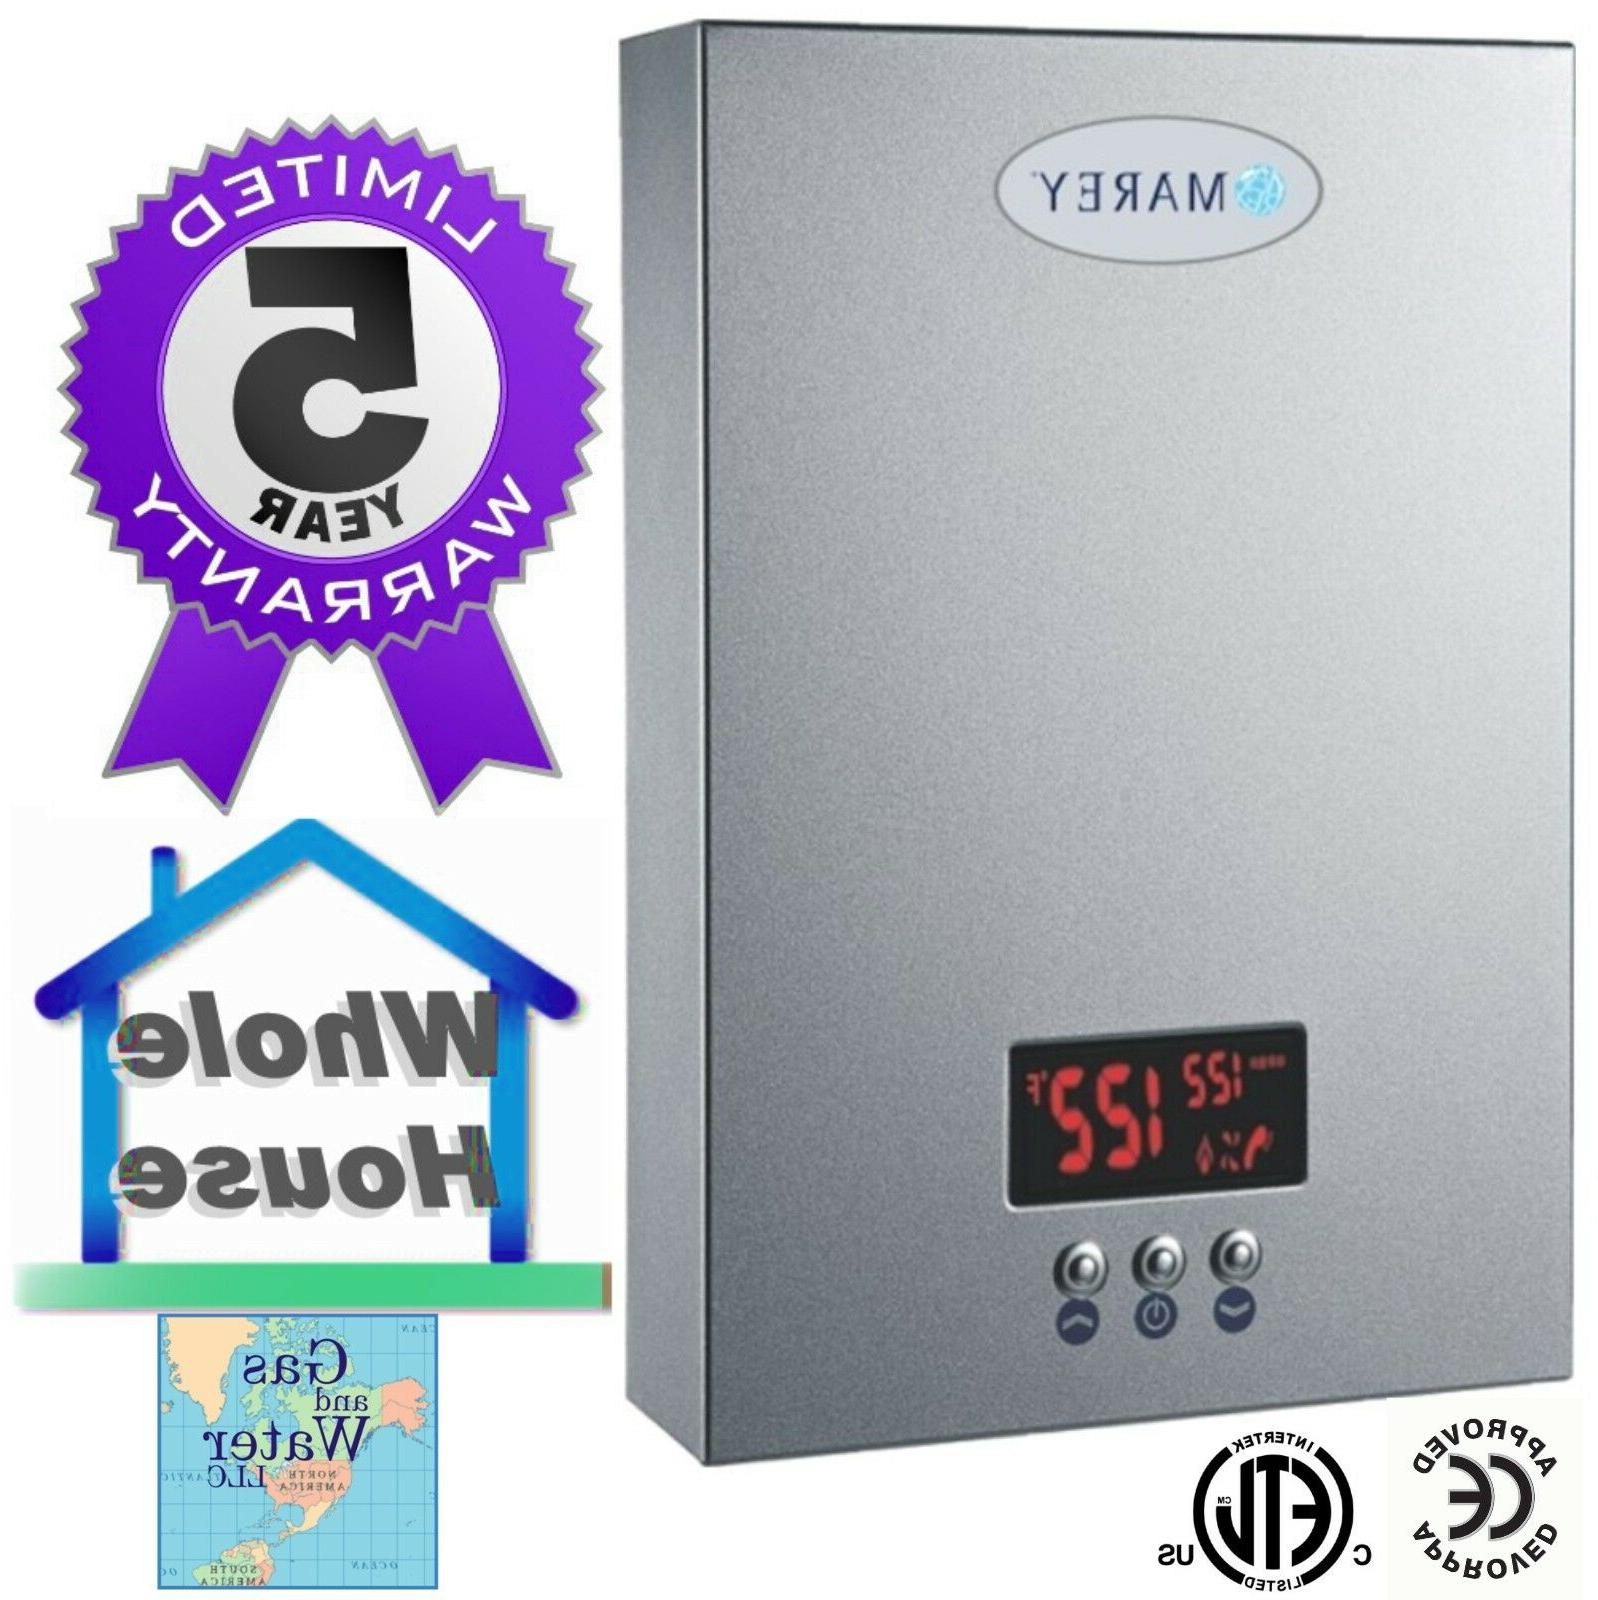 Marey GPM Electric Tankless Heater ECO180